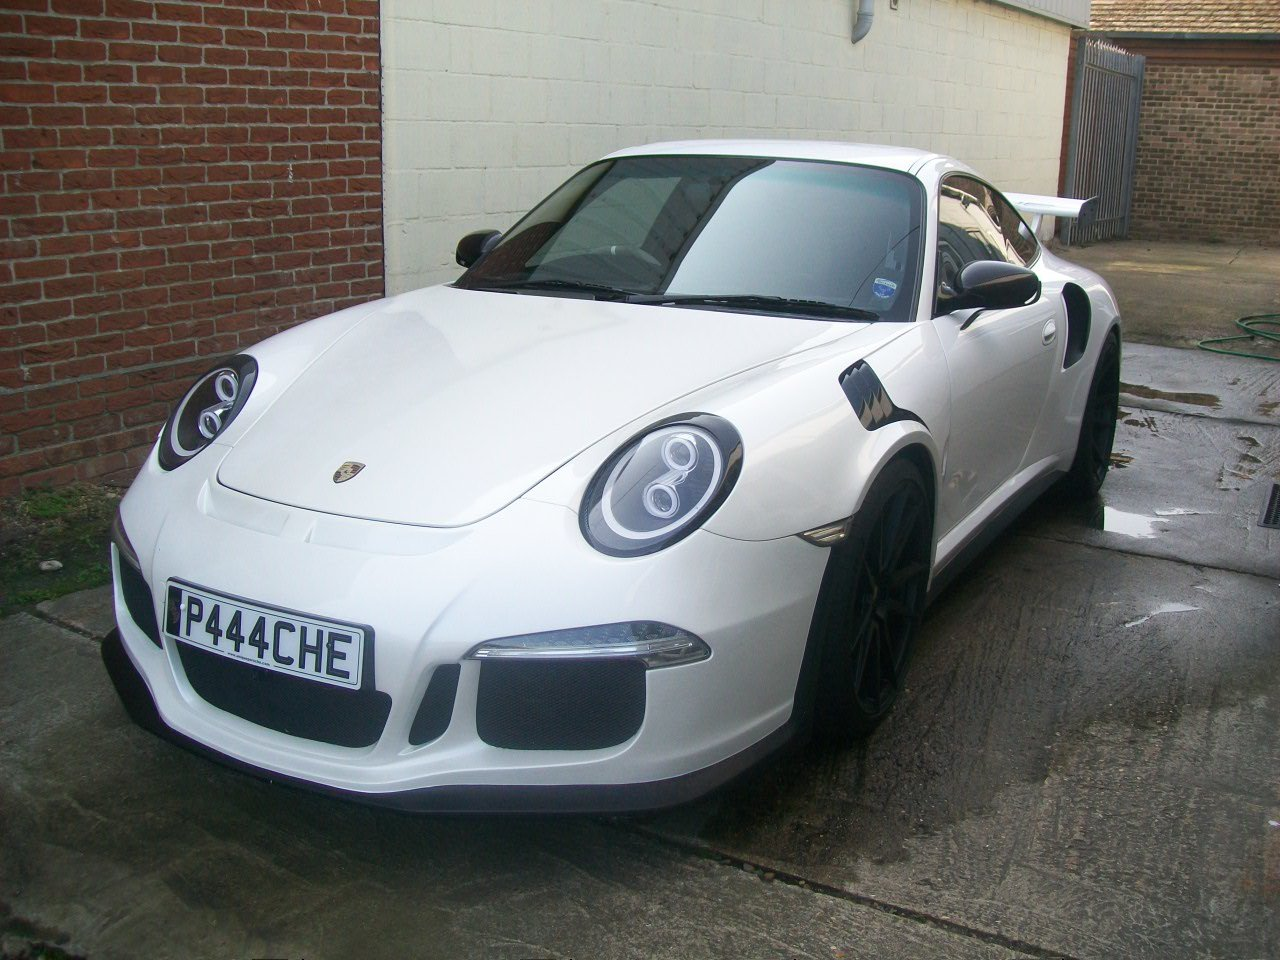 2001 Porsche 911 full gt3 conversion 3.9ltr hartech new For Sale (picture 1 of 6)